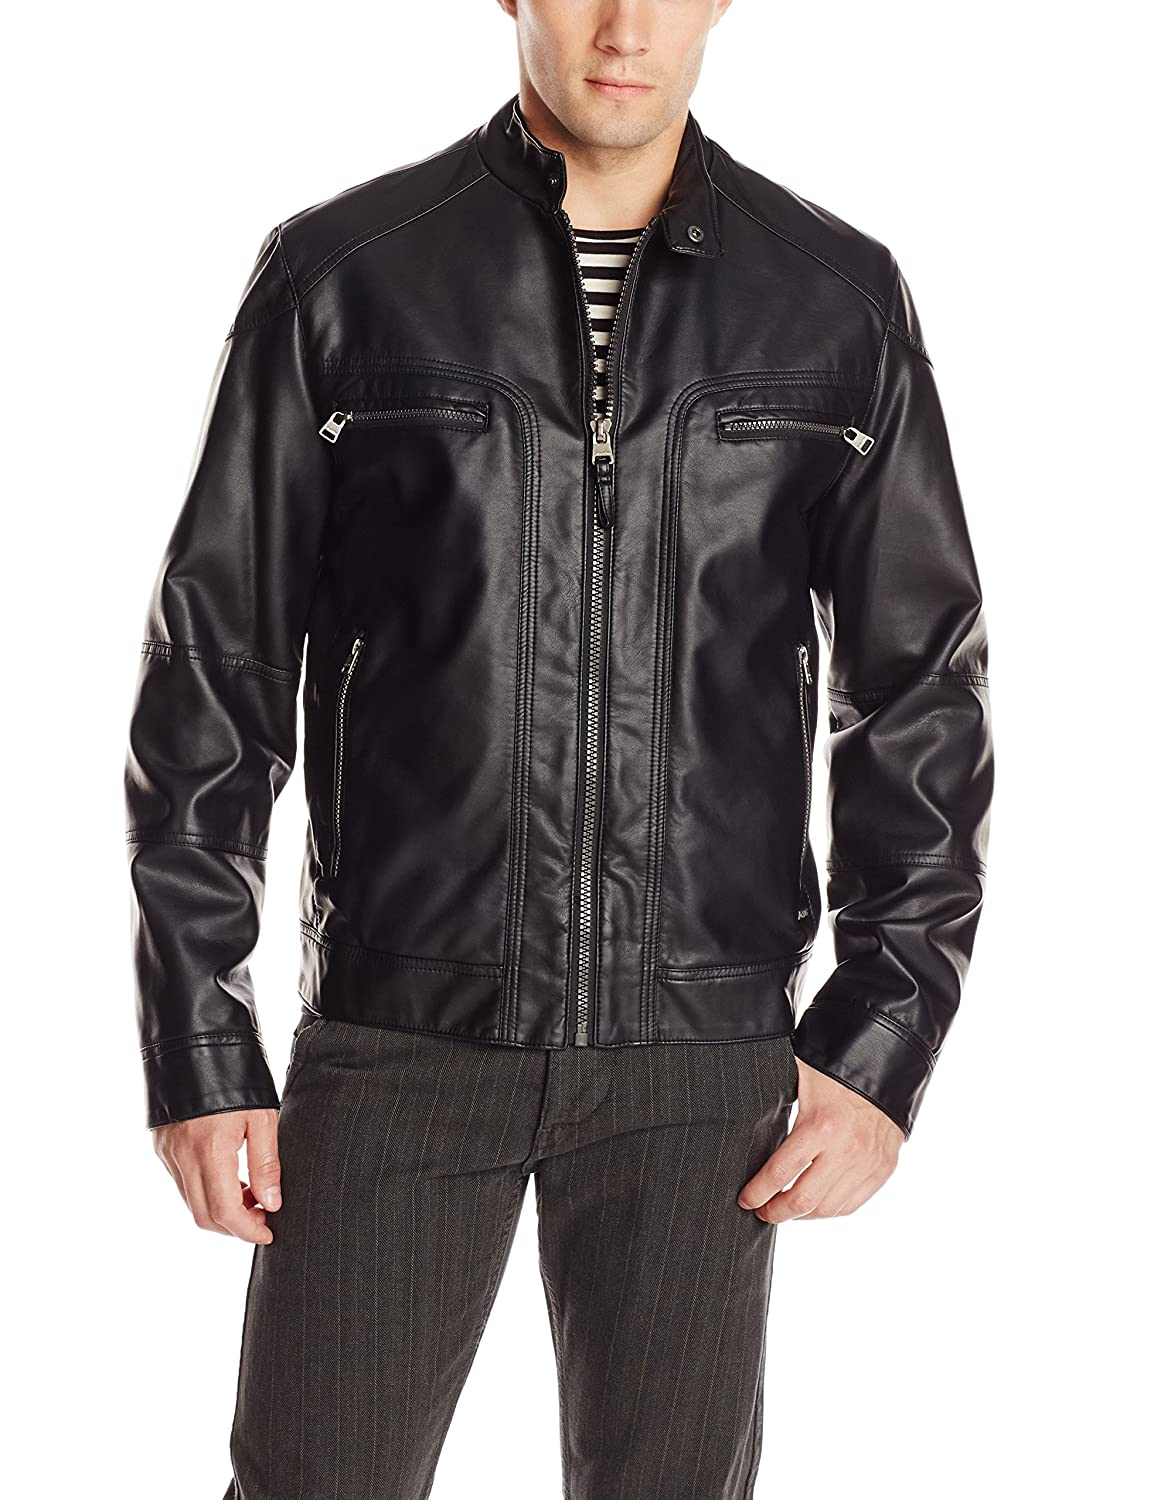 Leather jacket and hoodie - Calvin Klein Men S Faux Leather Moto Jacket With Hoodie At Amazon Men S Clothing Store